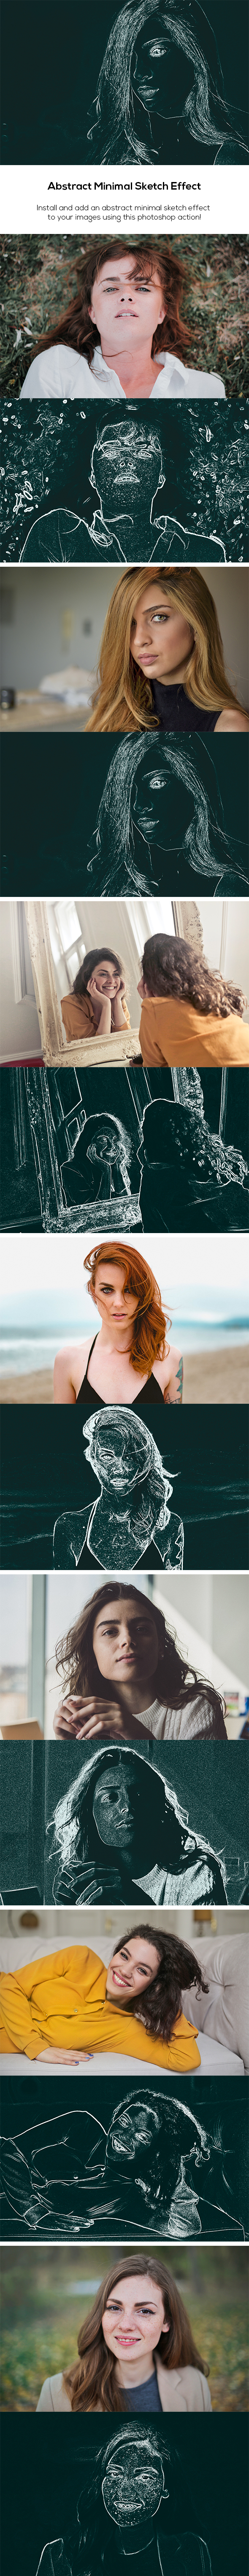 Abstract Minimal Sketch Effect - Photo Effects Actions